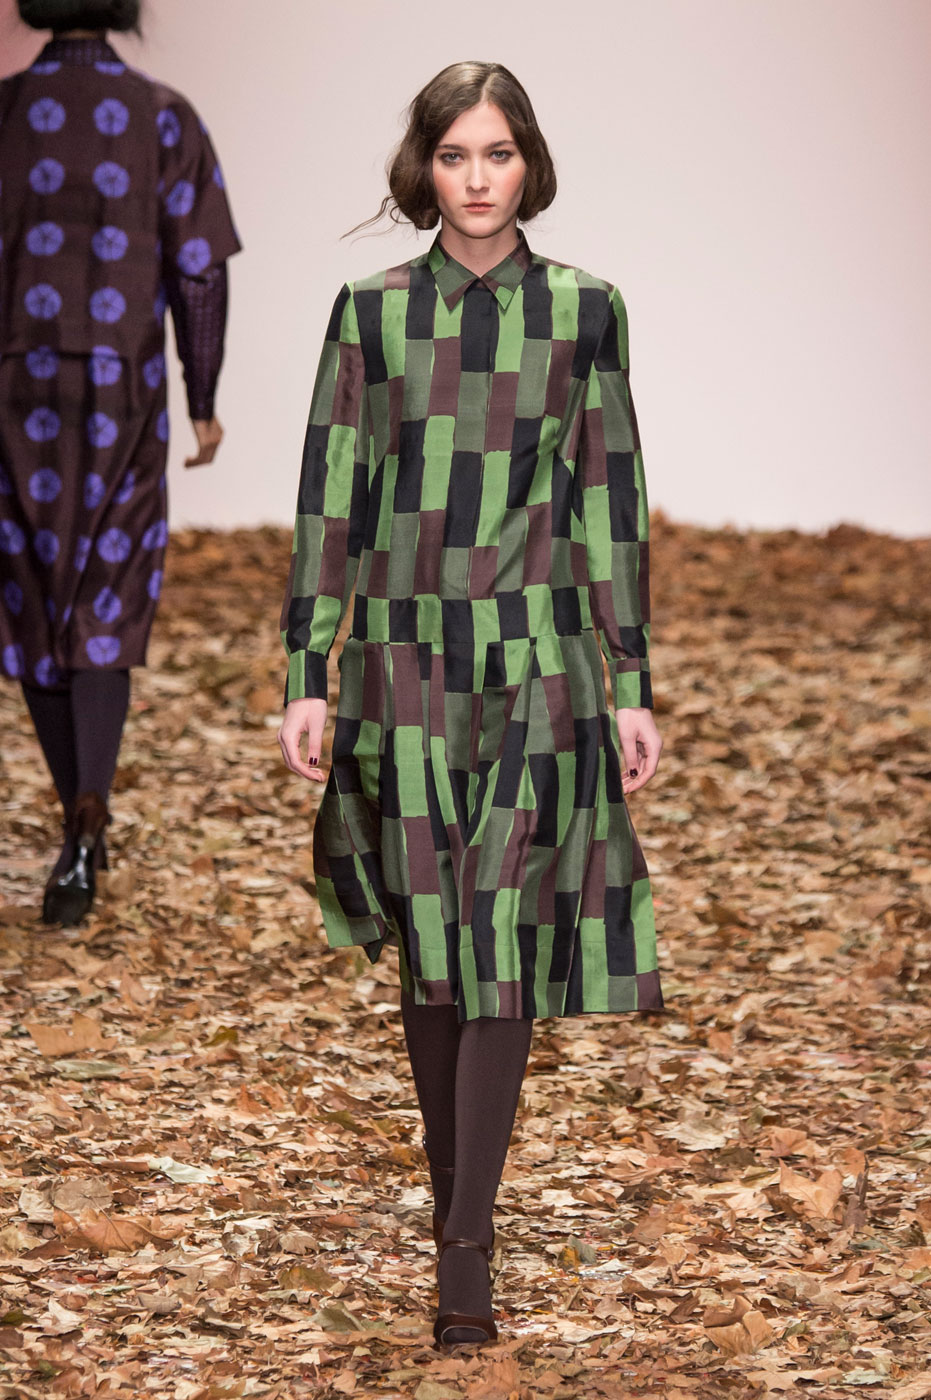 conran women Buy second-hand jasper conran dresses for women on vestiaire collective buy, sell, empty your wardrobe on our website.